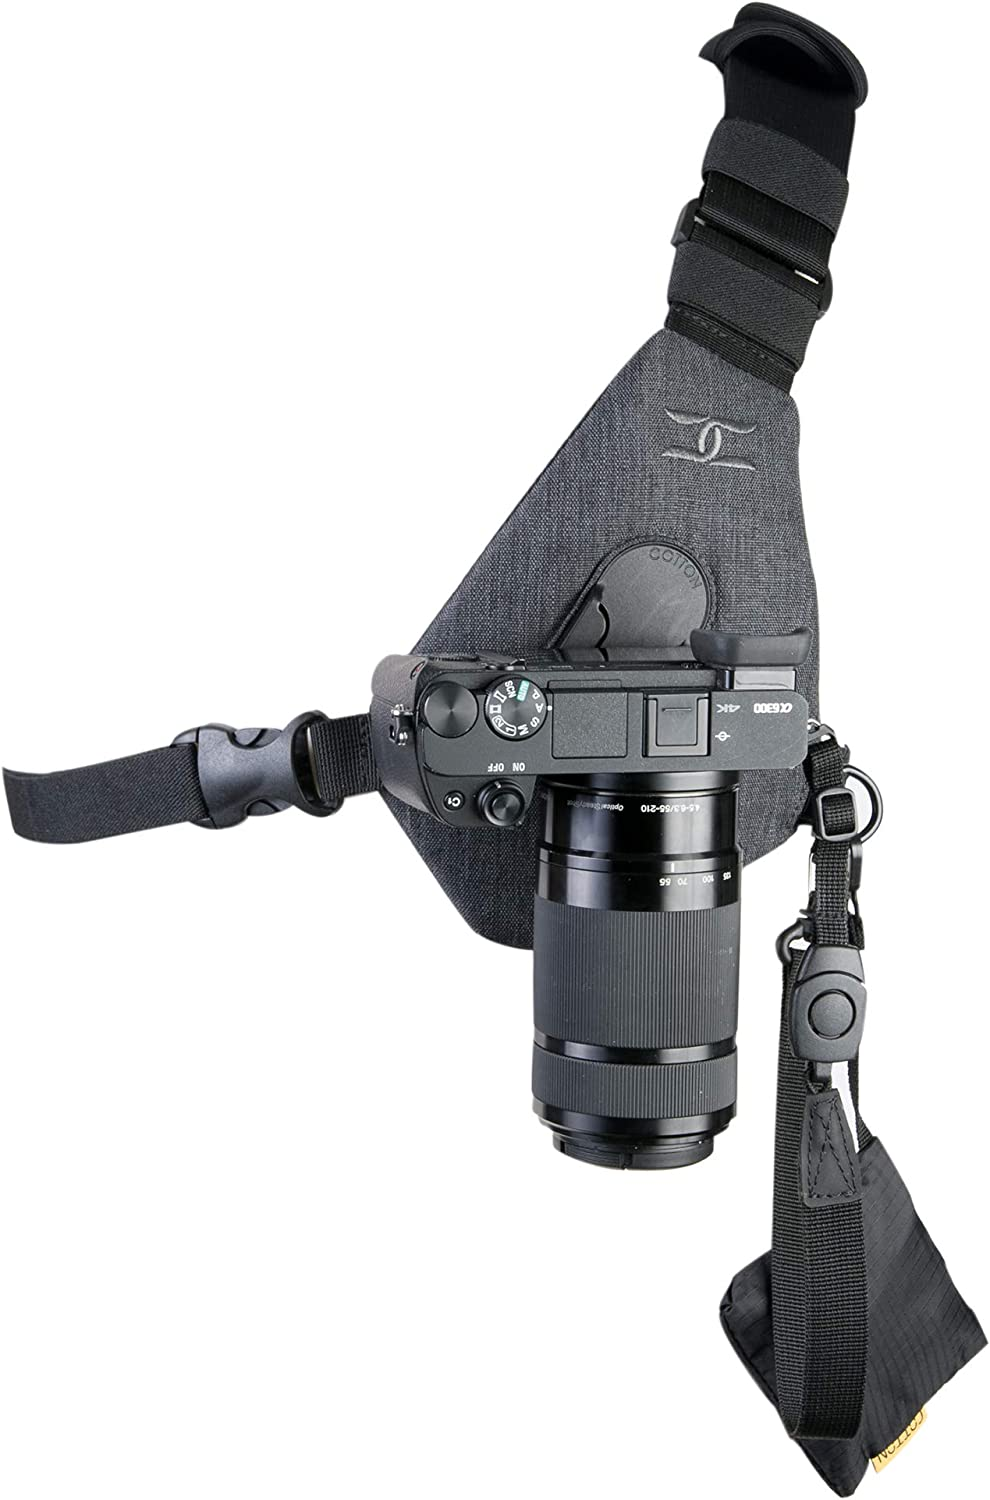 Cotton Carrier Skout Sling Style Harness Camera - Grey One Ranking TOP19 Super intense SALE for